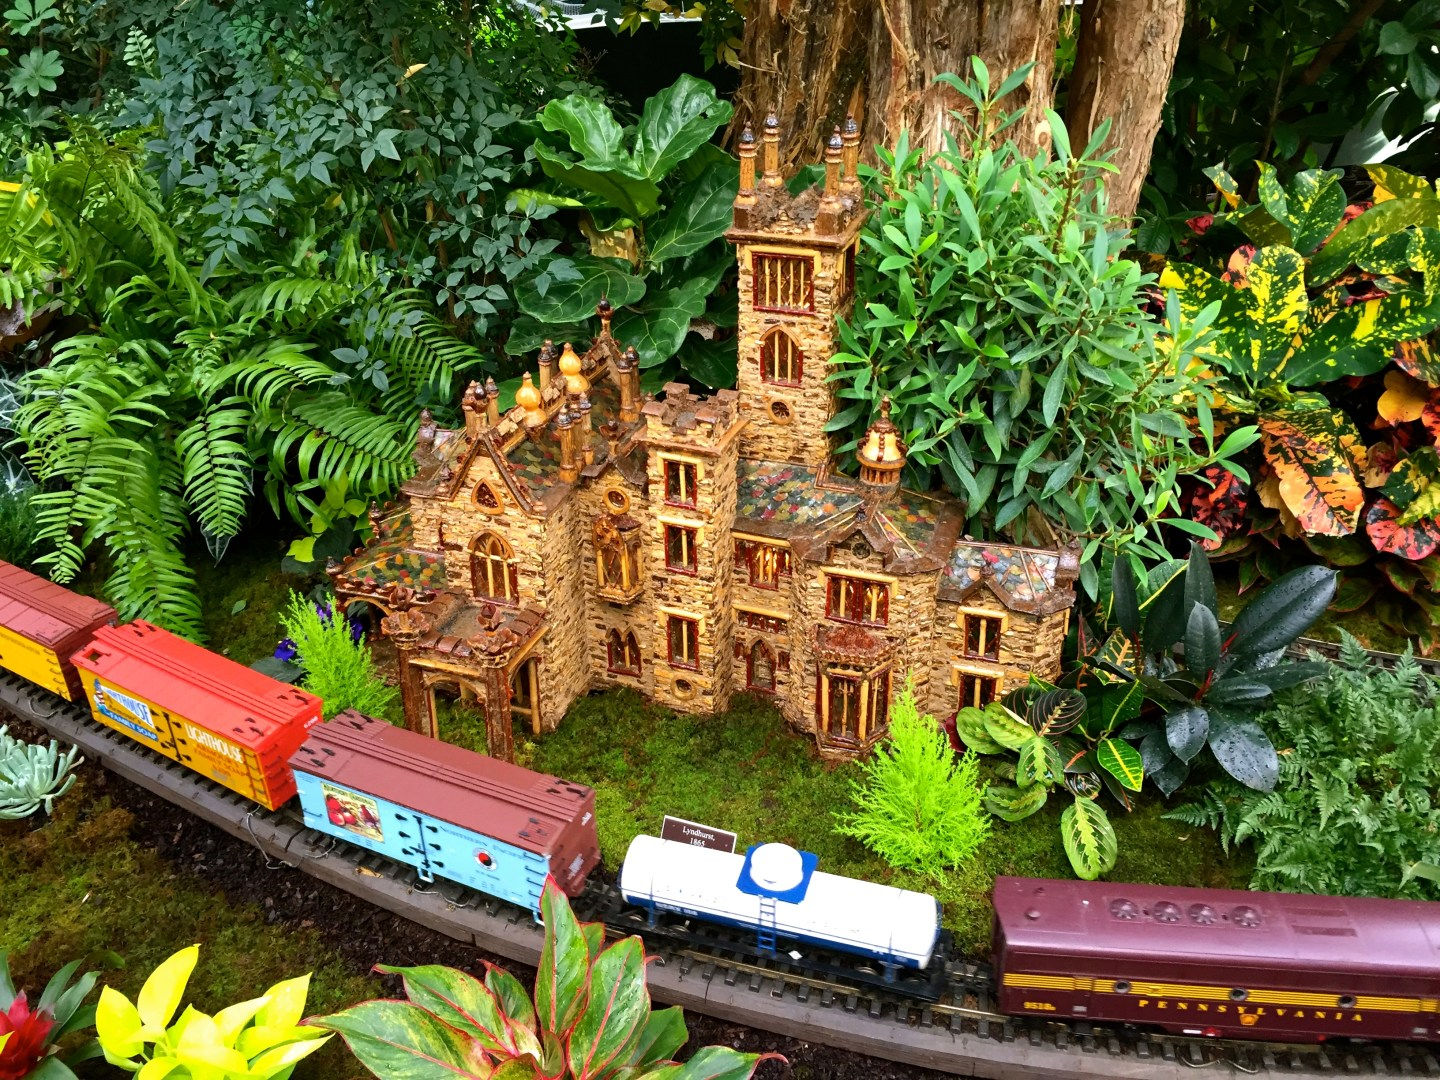 Day out at the Holiday Train Show at the New York Botanical Garden.